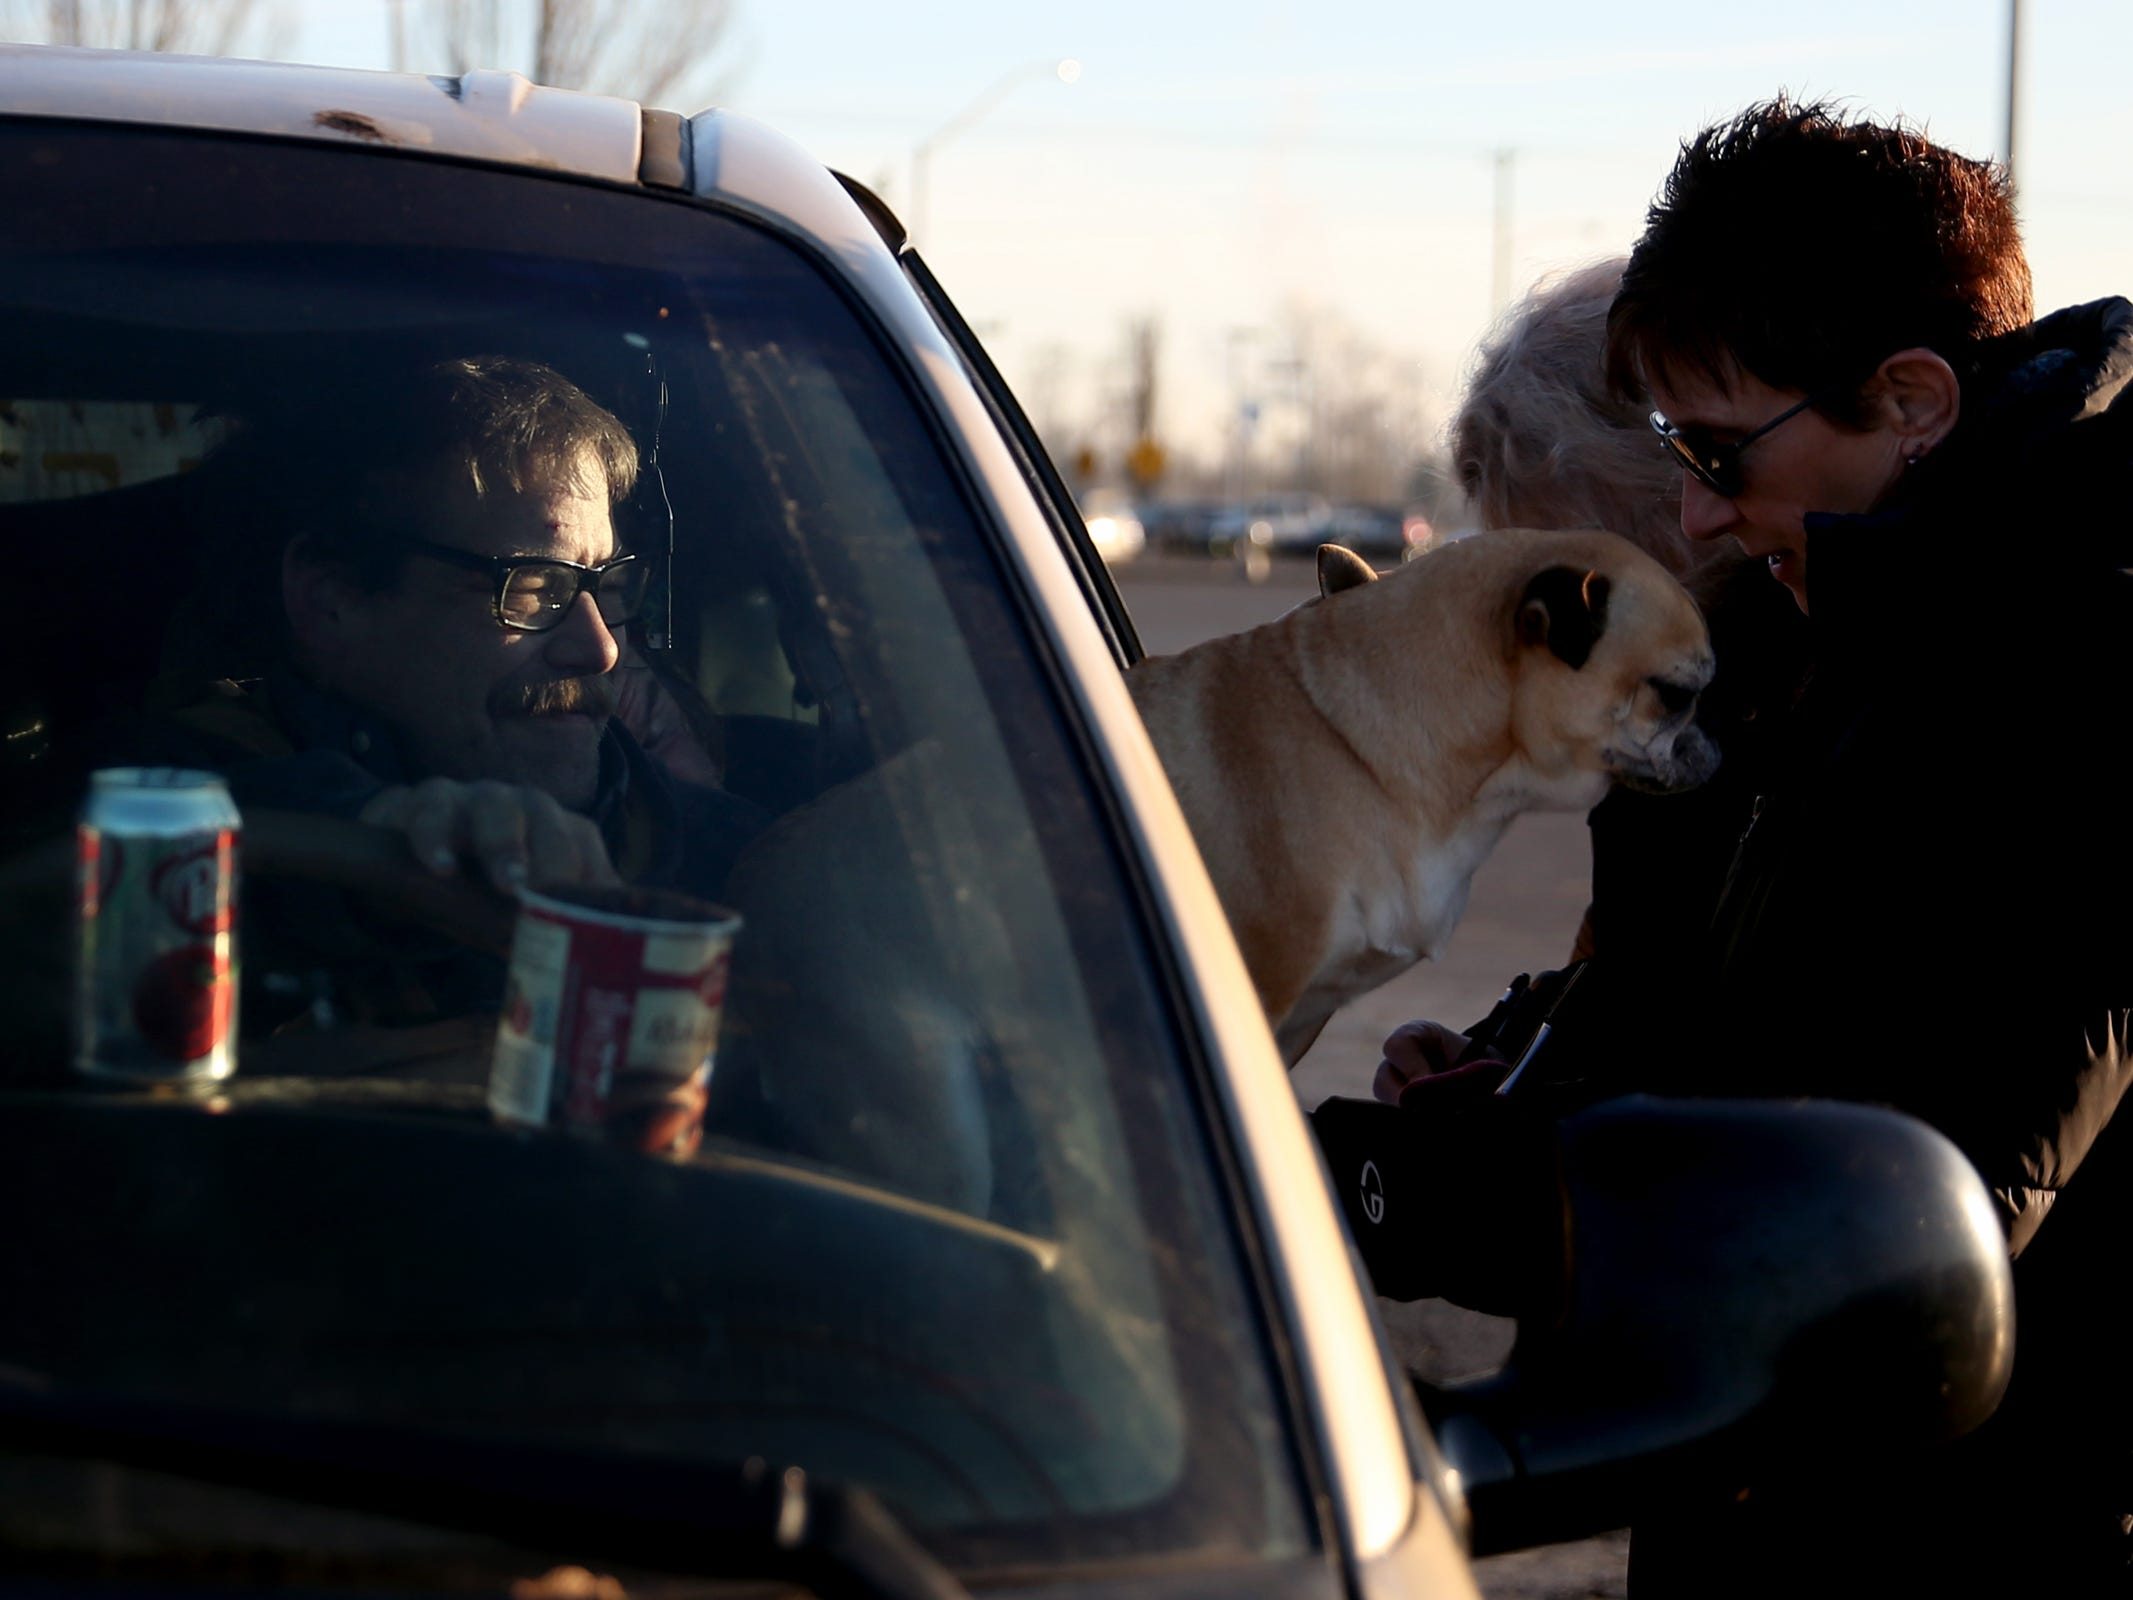 John Yarbough, 57, gives his information to volunteer Pamella Watson as his pug and chihuahua mix Cocoa leans out his van window during the annual Point-in-Time homeless count in Salem on Wednesday, Jan. 30, 2019. The number of people counted helps local programs qualify for federal funds to combat homelessness. He lives in a minivan with another person and two dogs that was parked in the former Kmart parking lot.